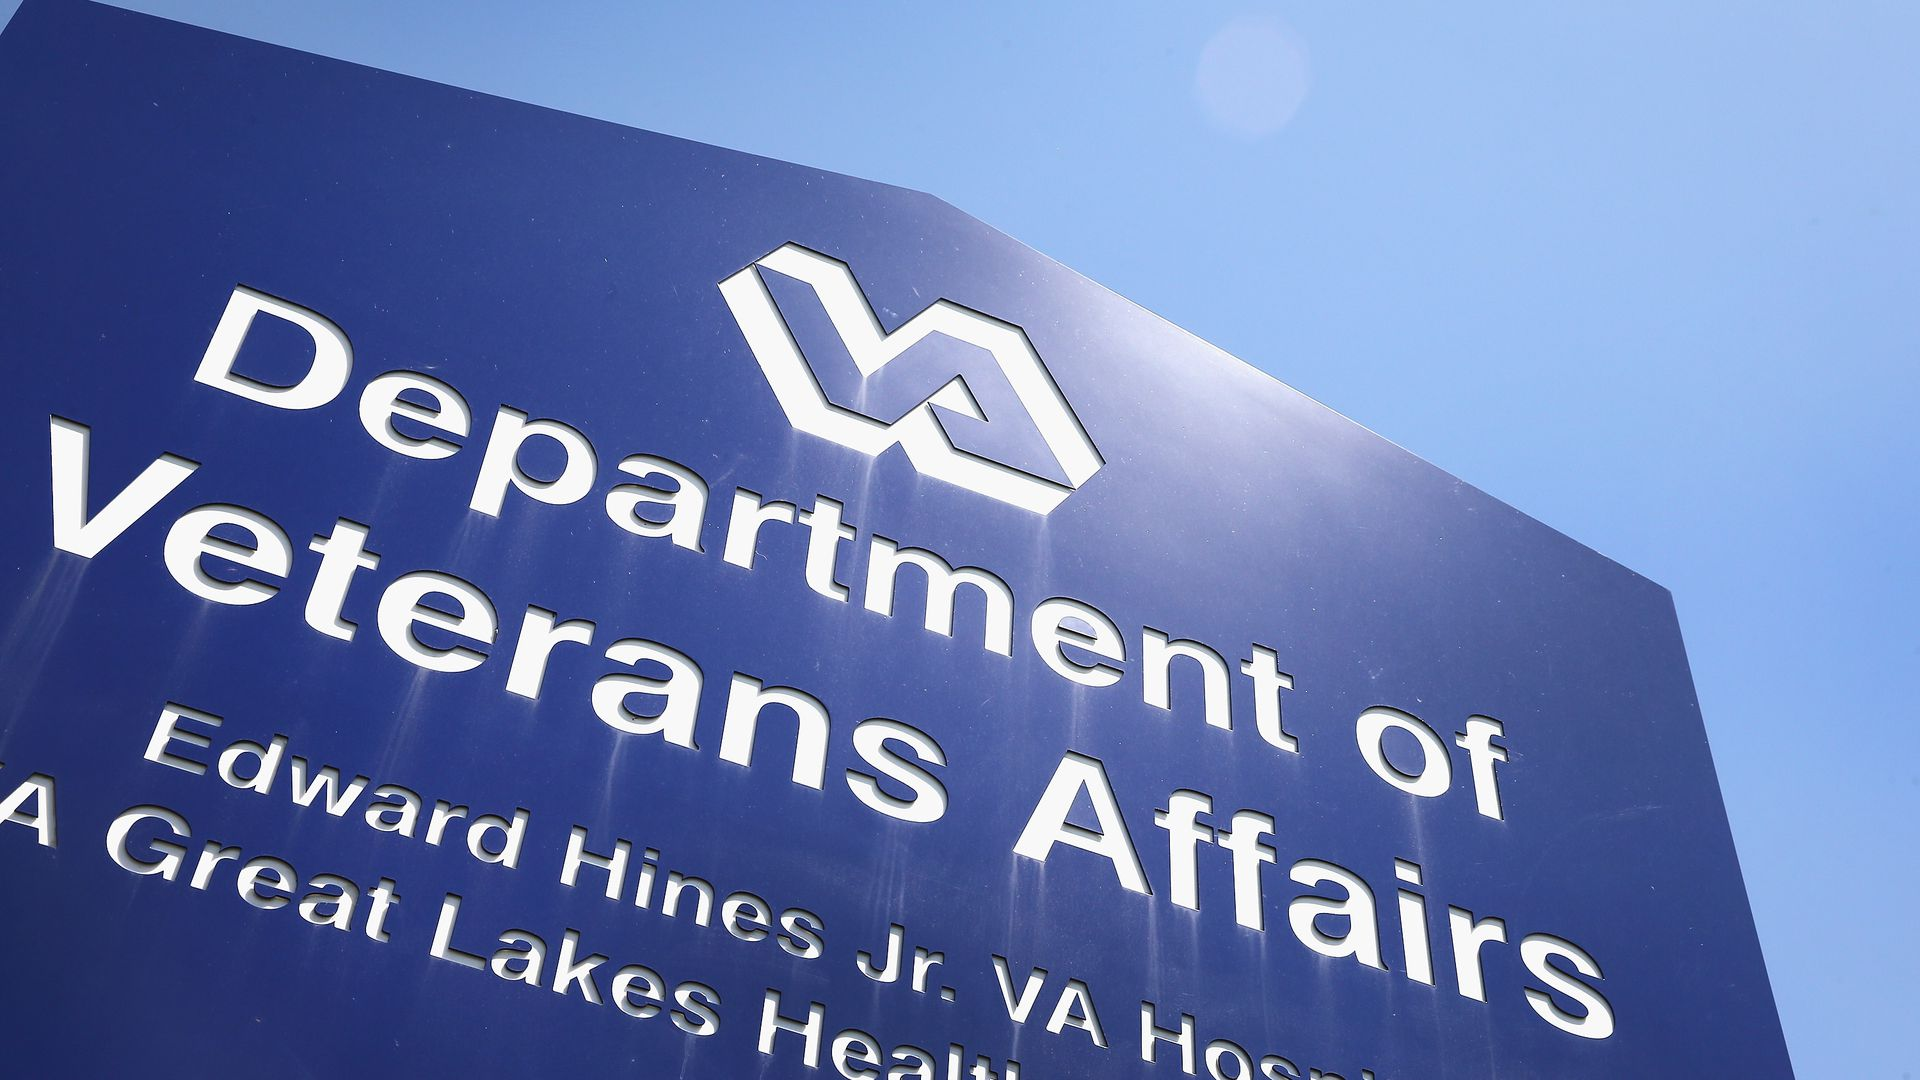 A sign outside the VA hospital in Hines, Illinois.